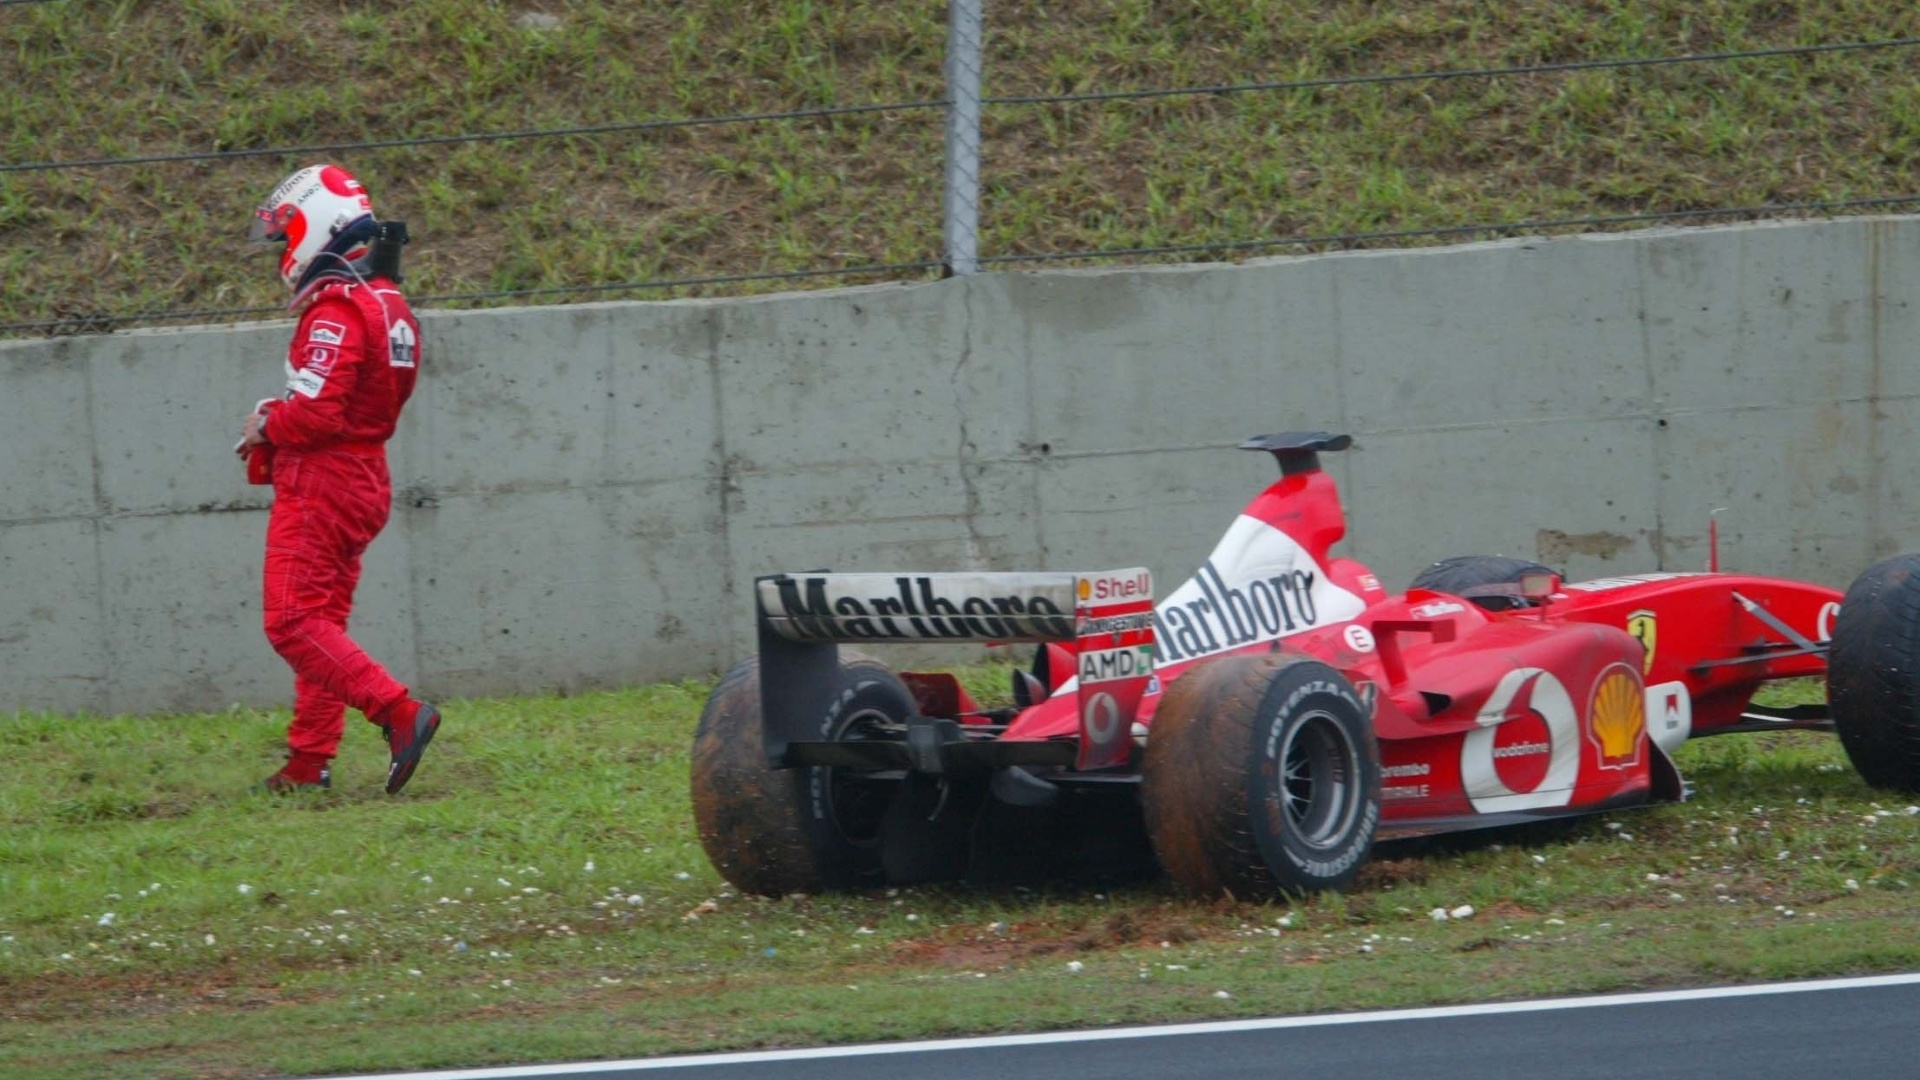 Na 47 volta do GP do Brasil de 2003, Rubens Barrichello teve de abandonar enquanto liderava por conta de uma pane seca em sua Ferrari. Ele nunca venceu em Interlagos